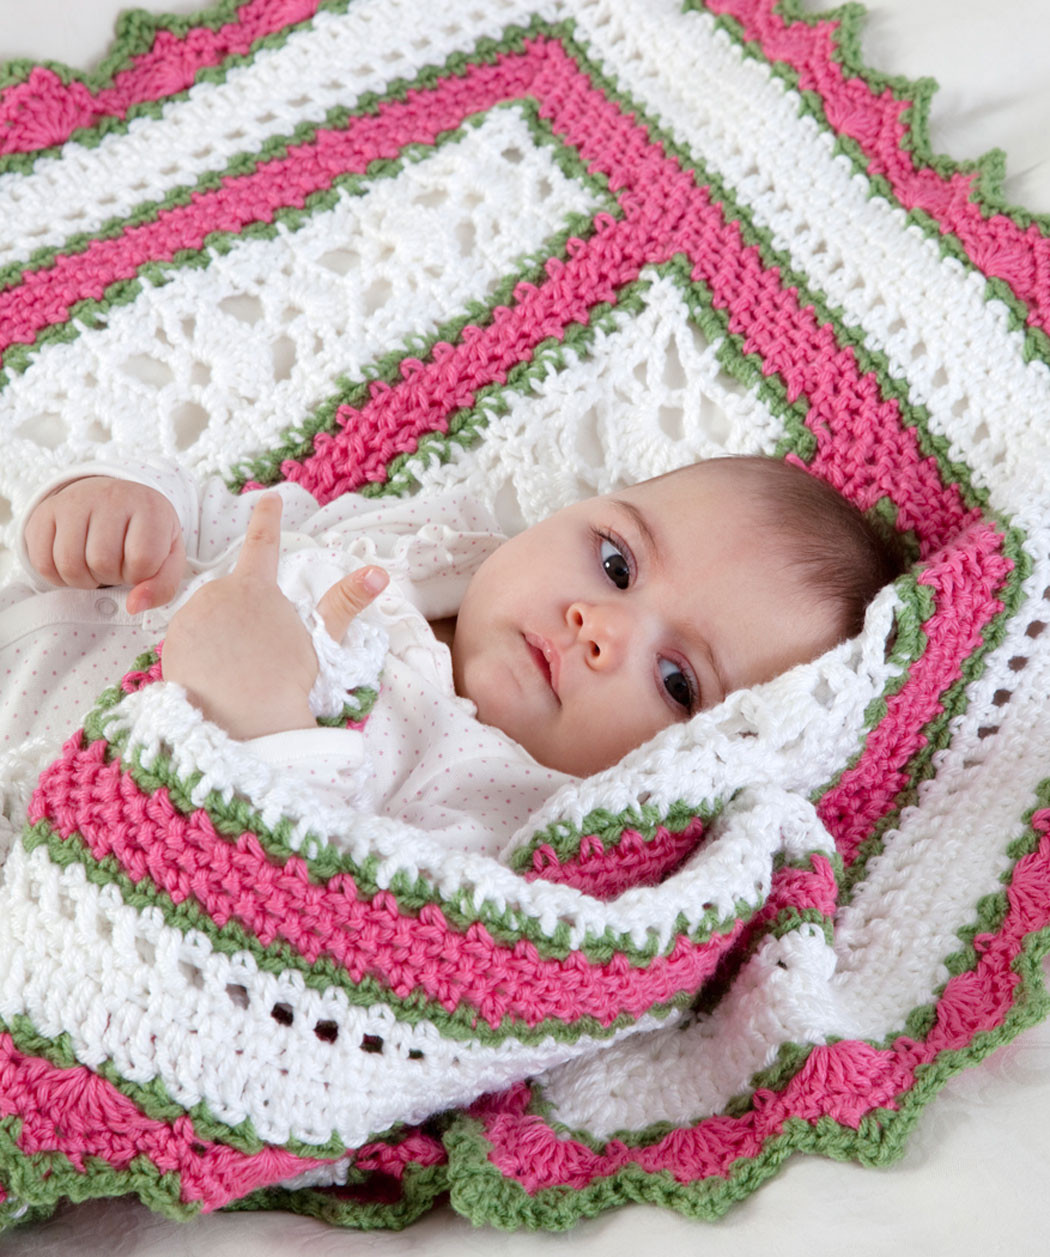 Crochet Throw Blanket Awesome 10 Beautiful Baby Blanket Free Patterns Of Great 44 Pics Crochet Throw Blanket